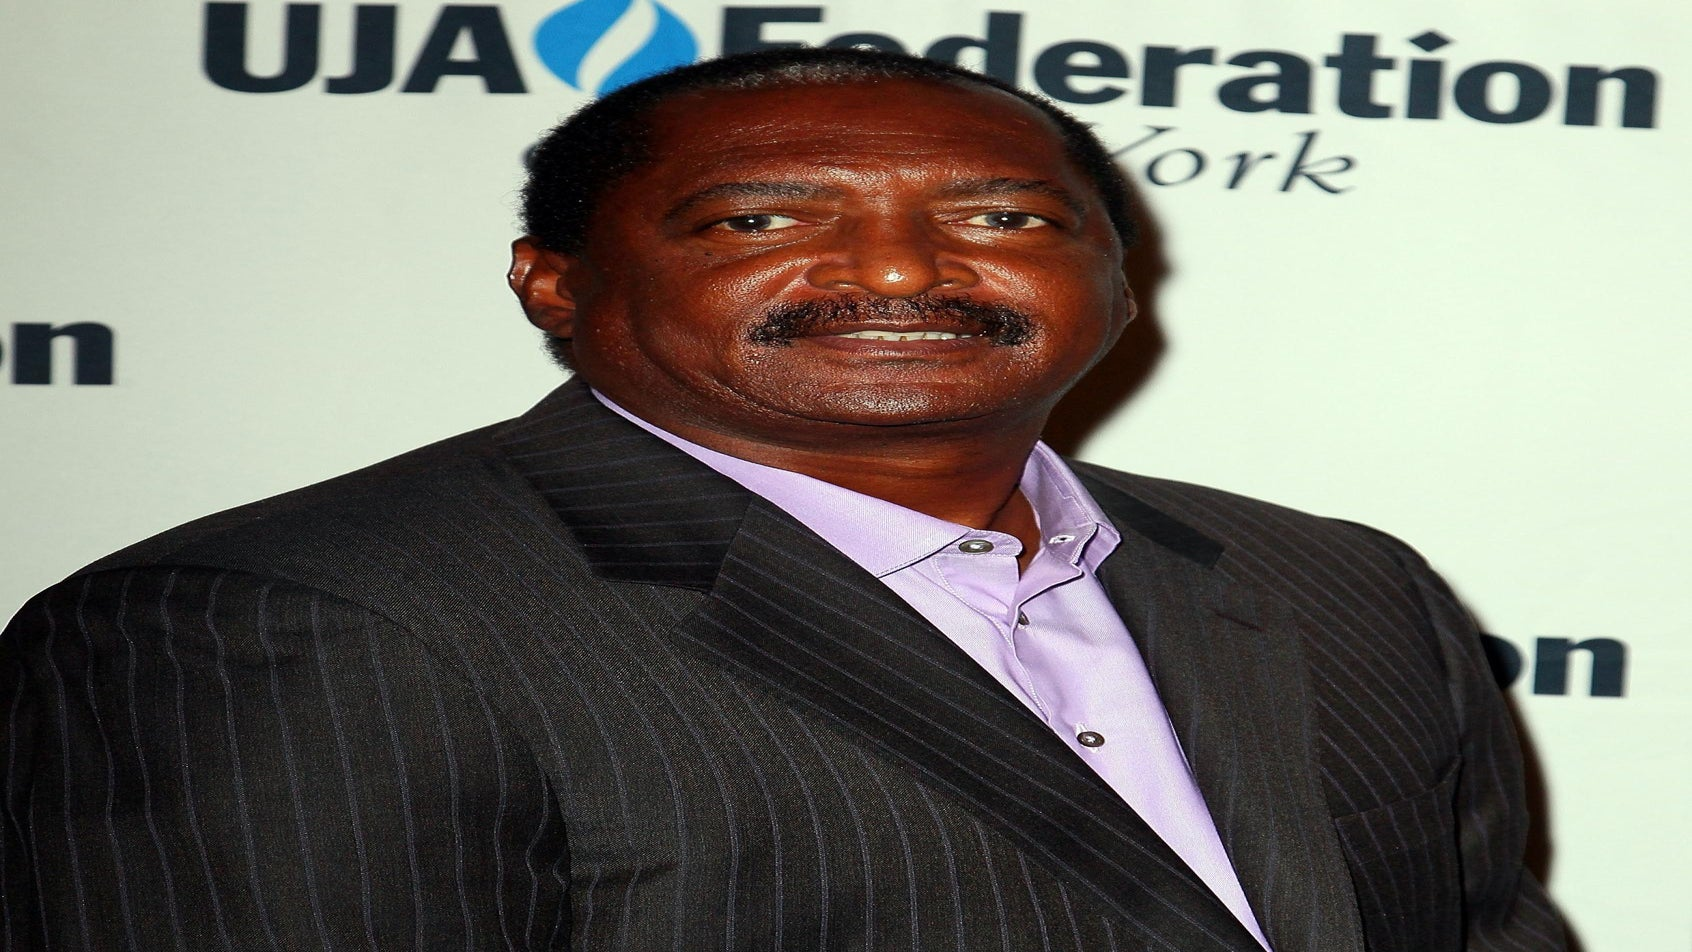 Mathew Knowles: 'If I Needed Money, I Wouldn't Sell $5 T-Shirts'